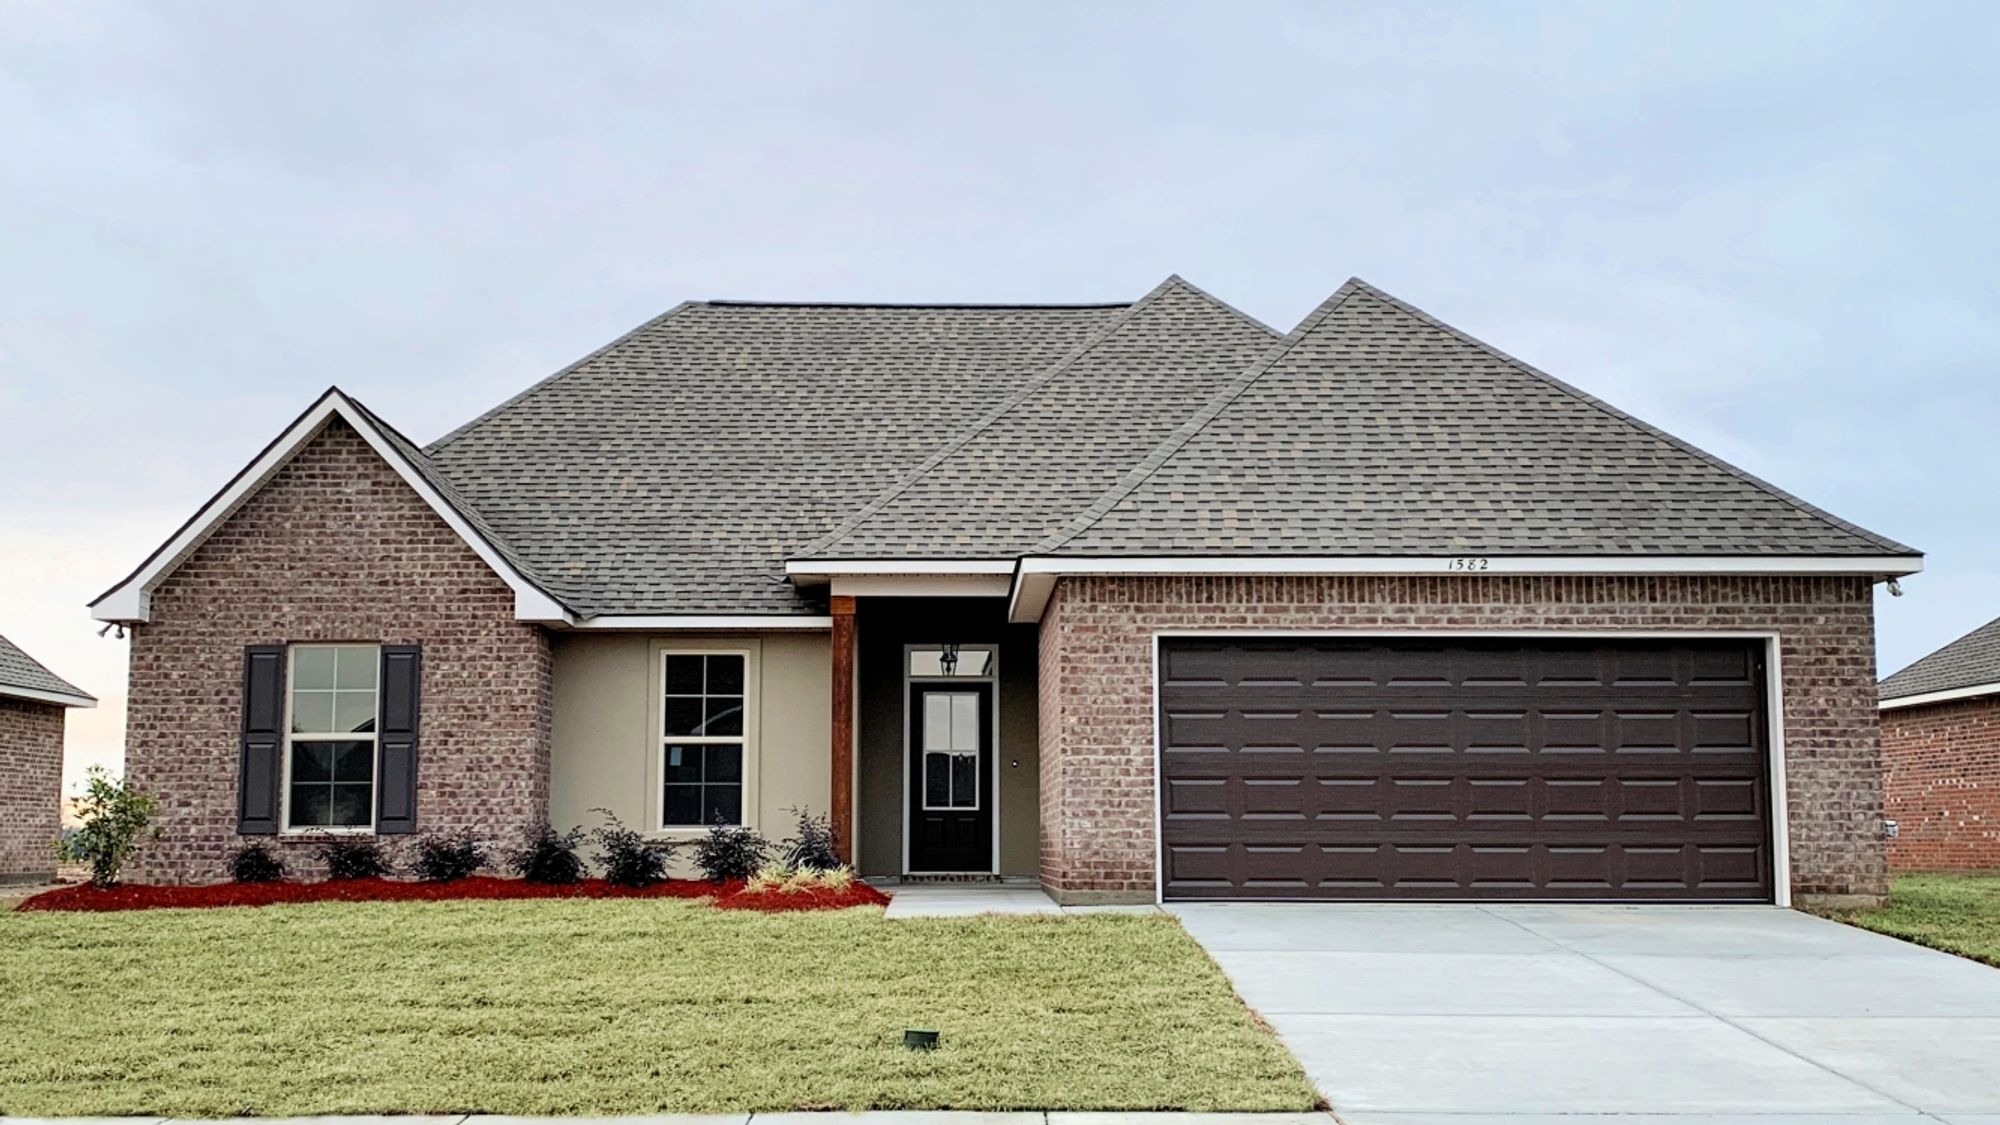 Front View - Lyon IV A - Fairview Gardens Community - DSLD Homes Zachary